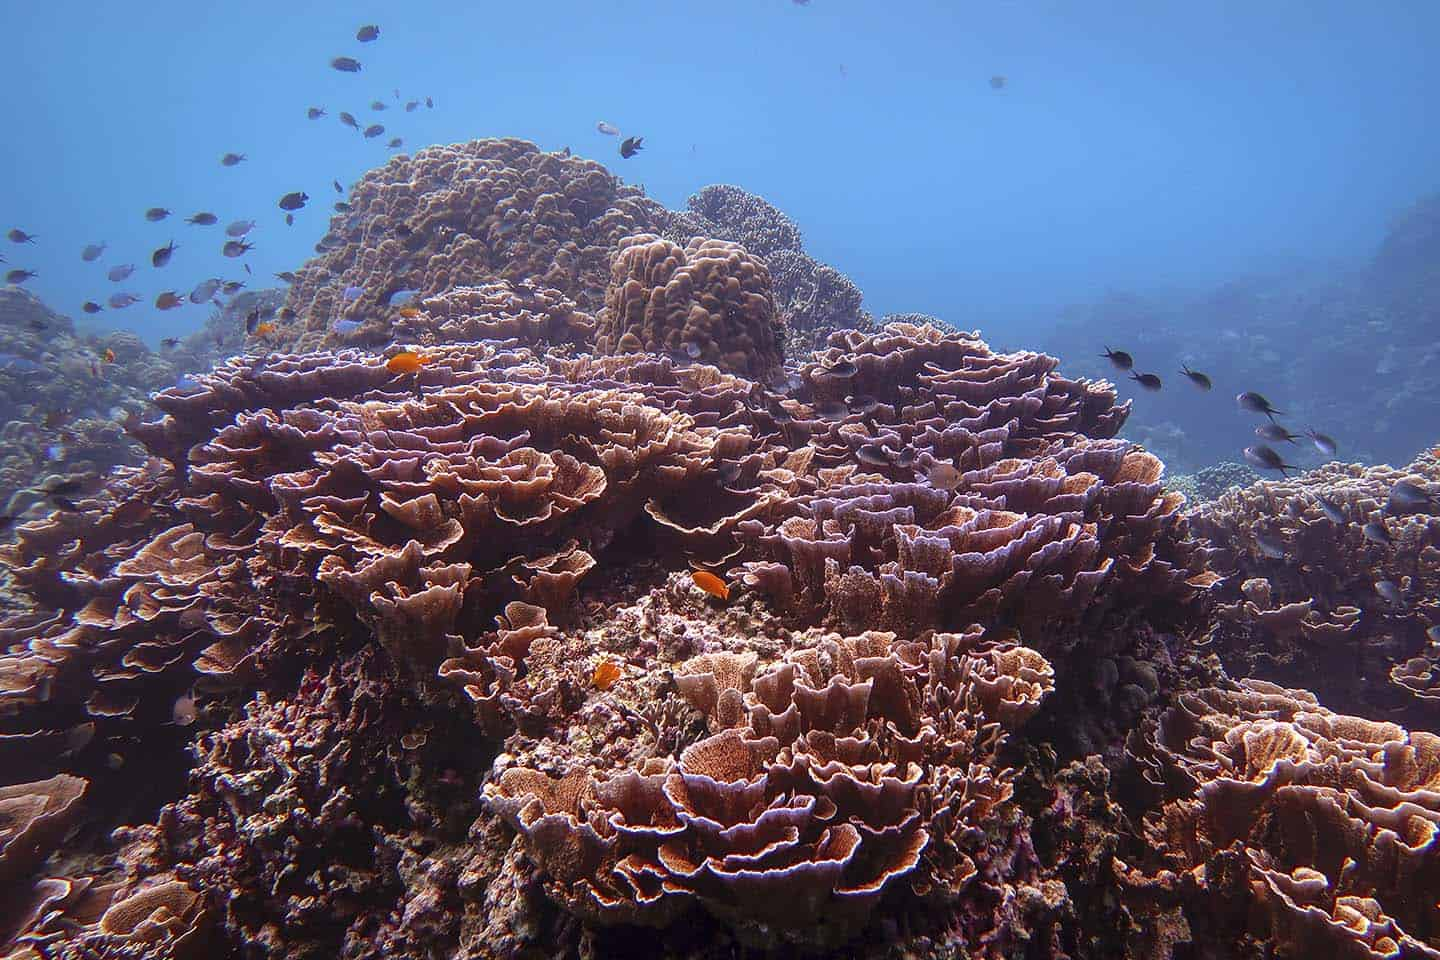 Scuba Diving Siquijor: The Mystical Island in the Philippines